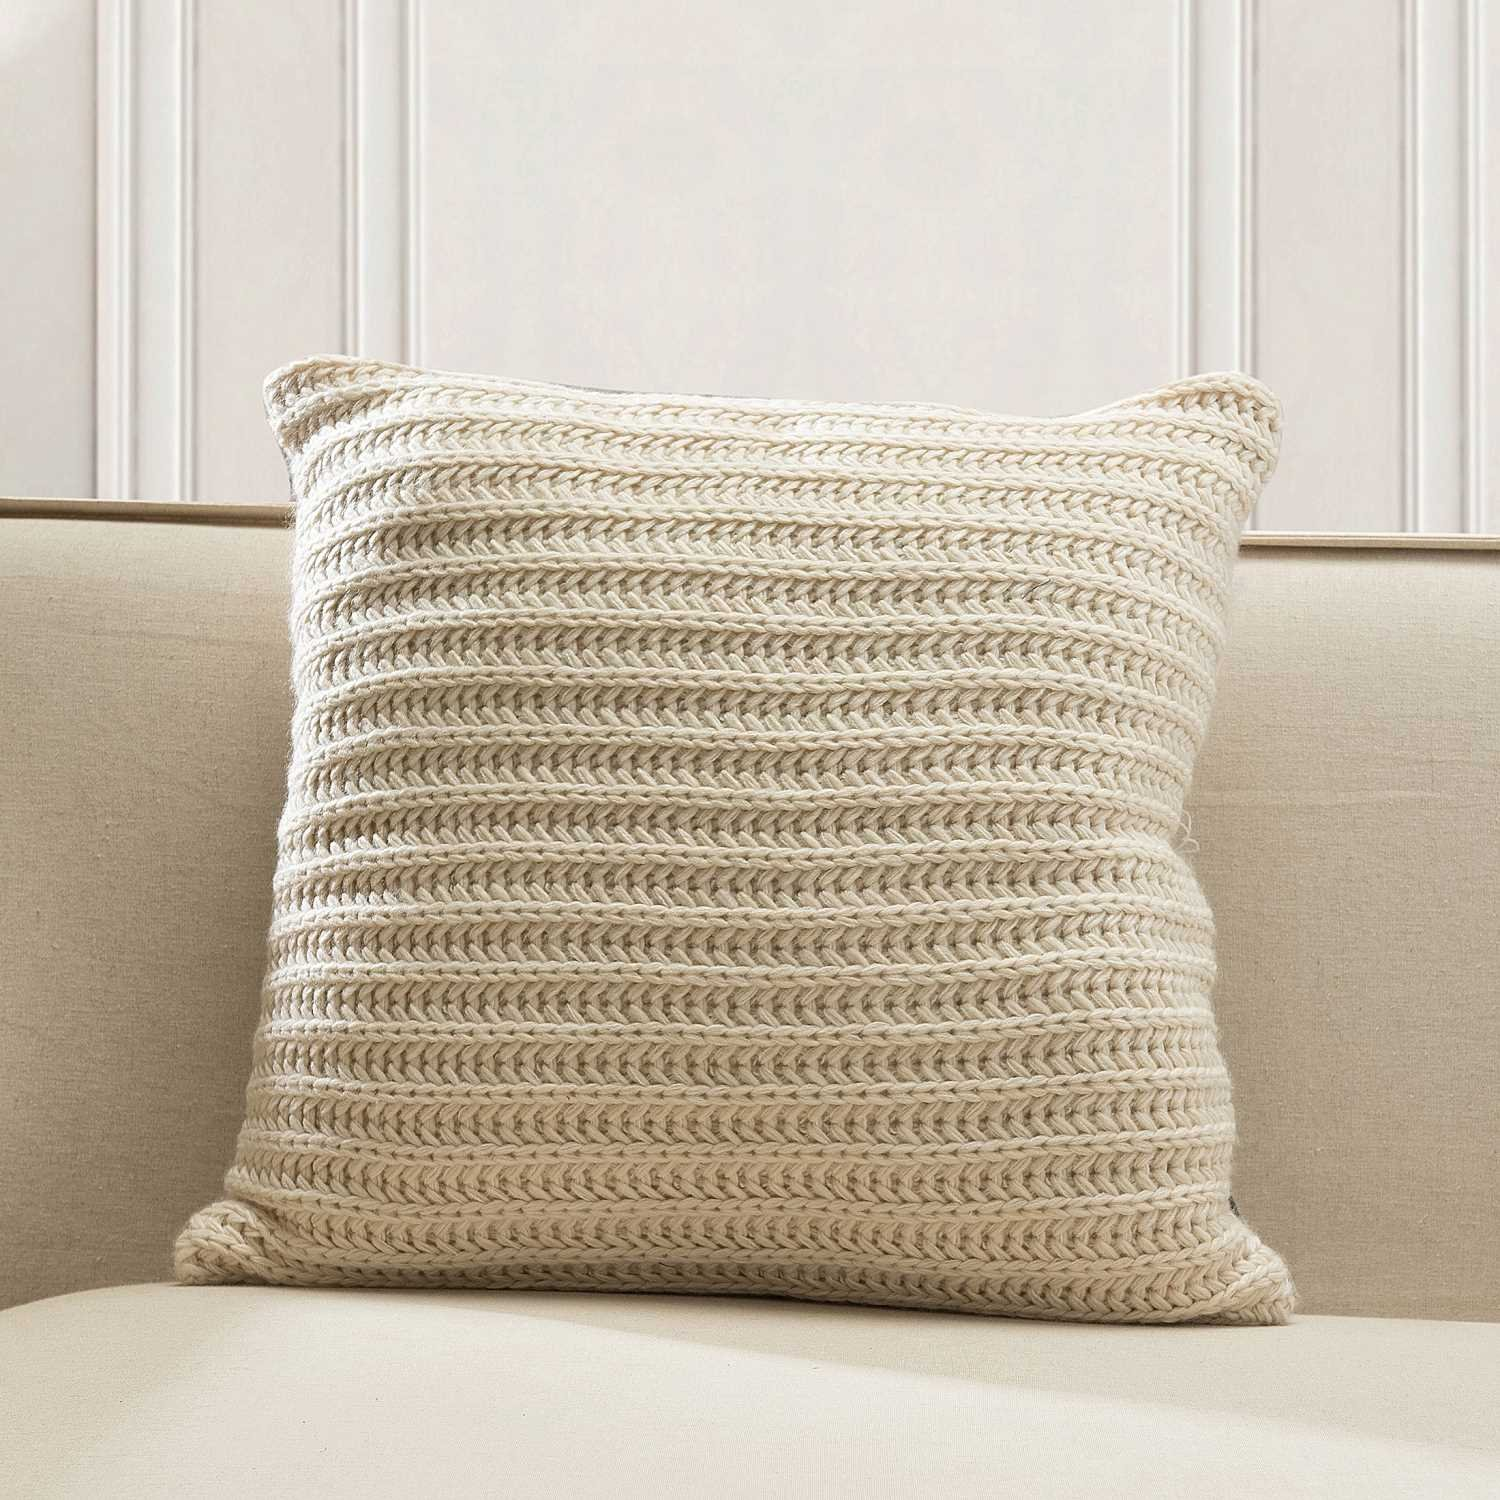 TINA'S HOME Knitted Decorative Throw Pillows with Down Feather Filling | Cozzy Acrylic Solid Color Toss Accent Pillows for Couch Sofa Bed Decor (20x20, Cream)